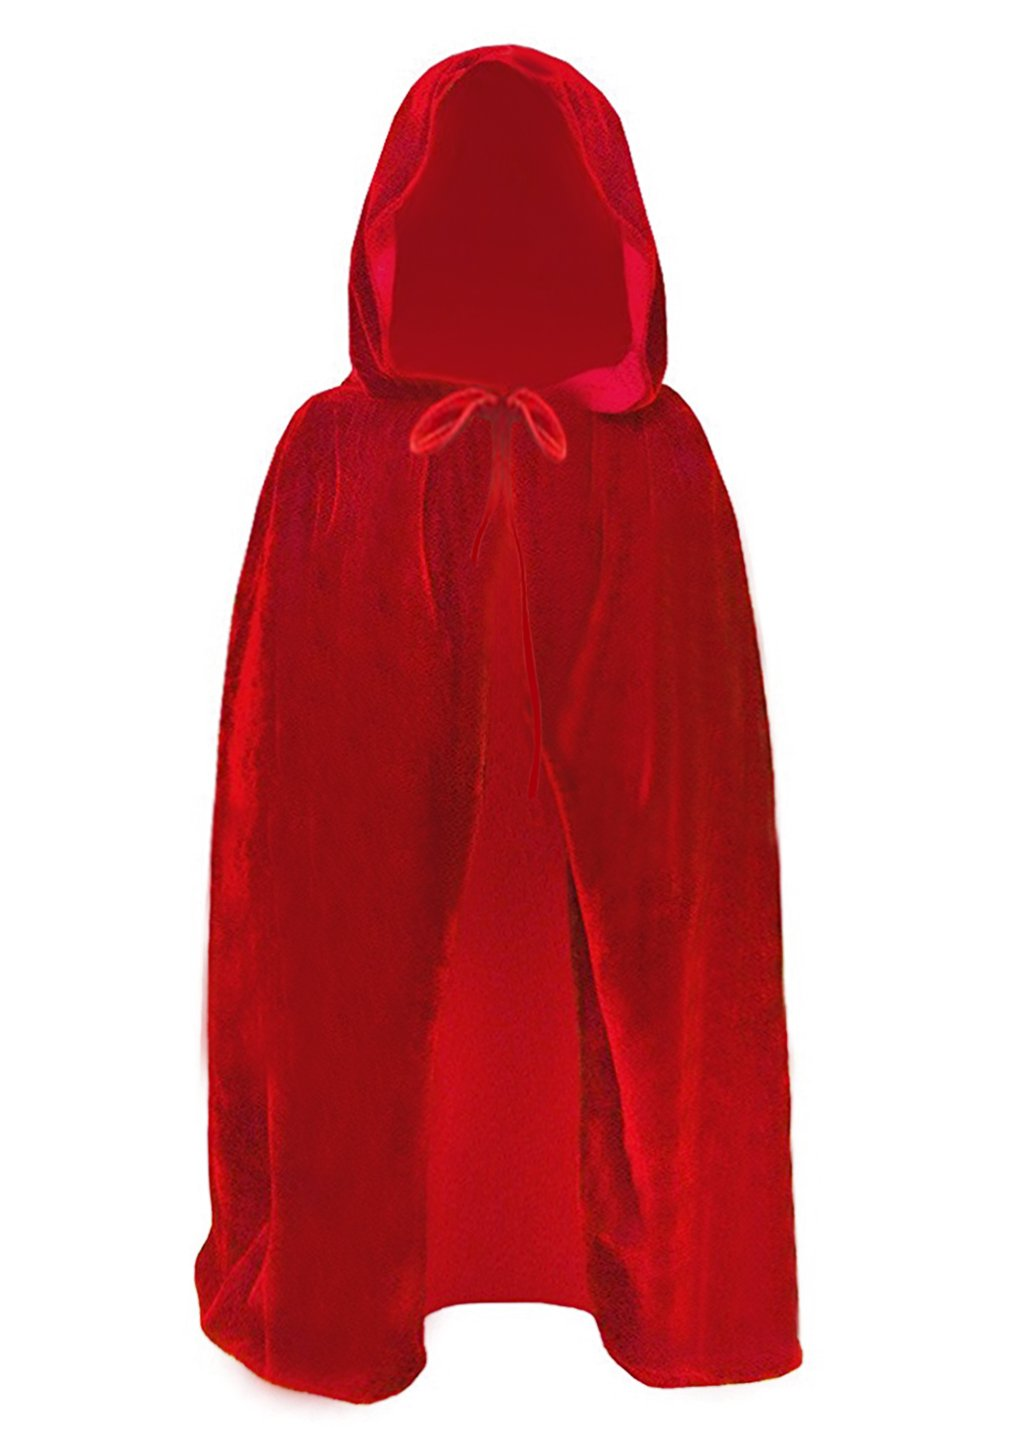 Kids Halloween Christmas Costumes Cape Velvet Hooded Cosplay Party Cloak Wizard Robe